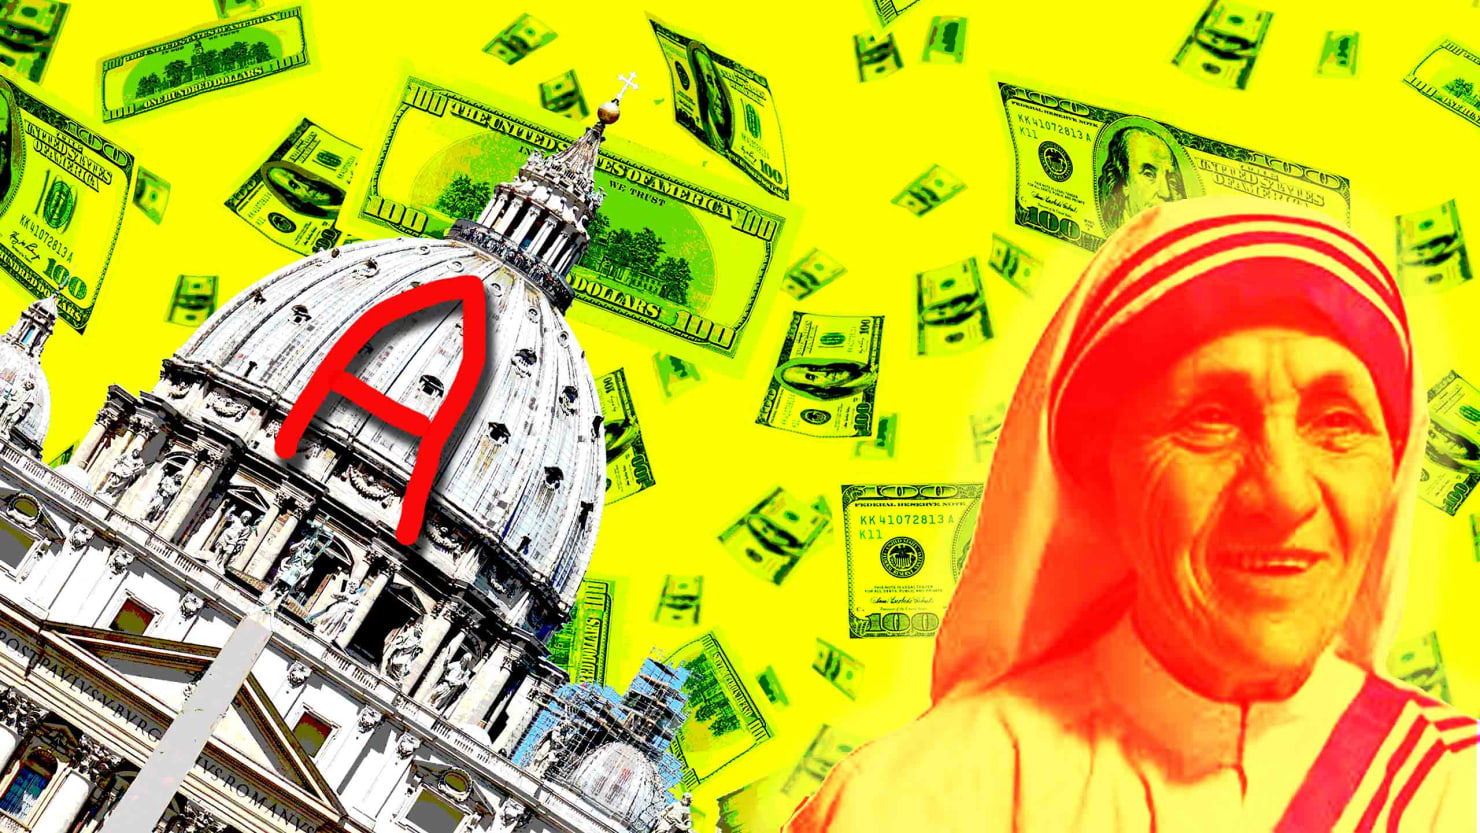 Mother Teresa's Secret Billions and a Vatican Seminary Rampant with Sex Abuse—a New Book Tells All